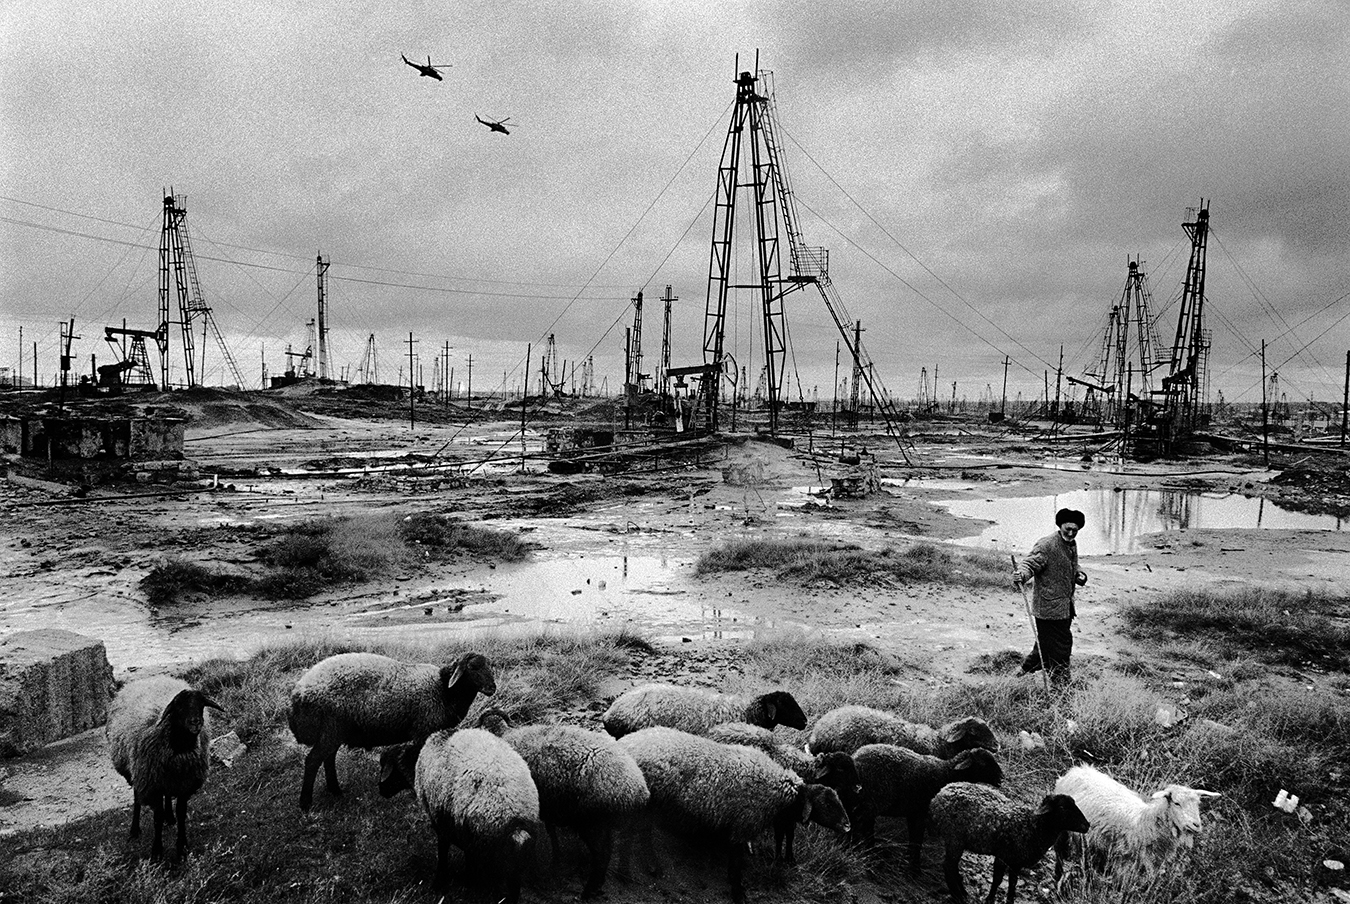 Azerbaijan, Baku. Balakhani Oil Fields. © 2007 Didier Ruef(click image to enlarge)